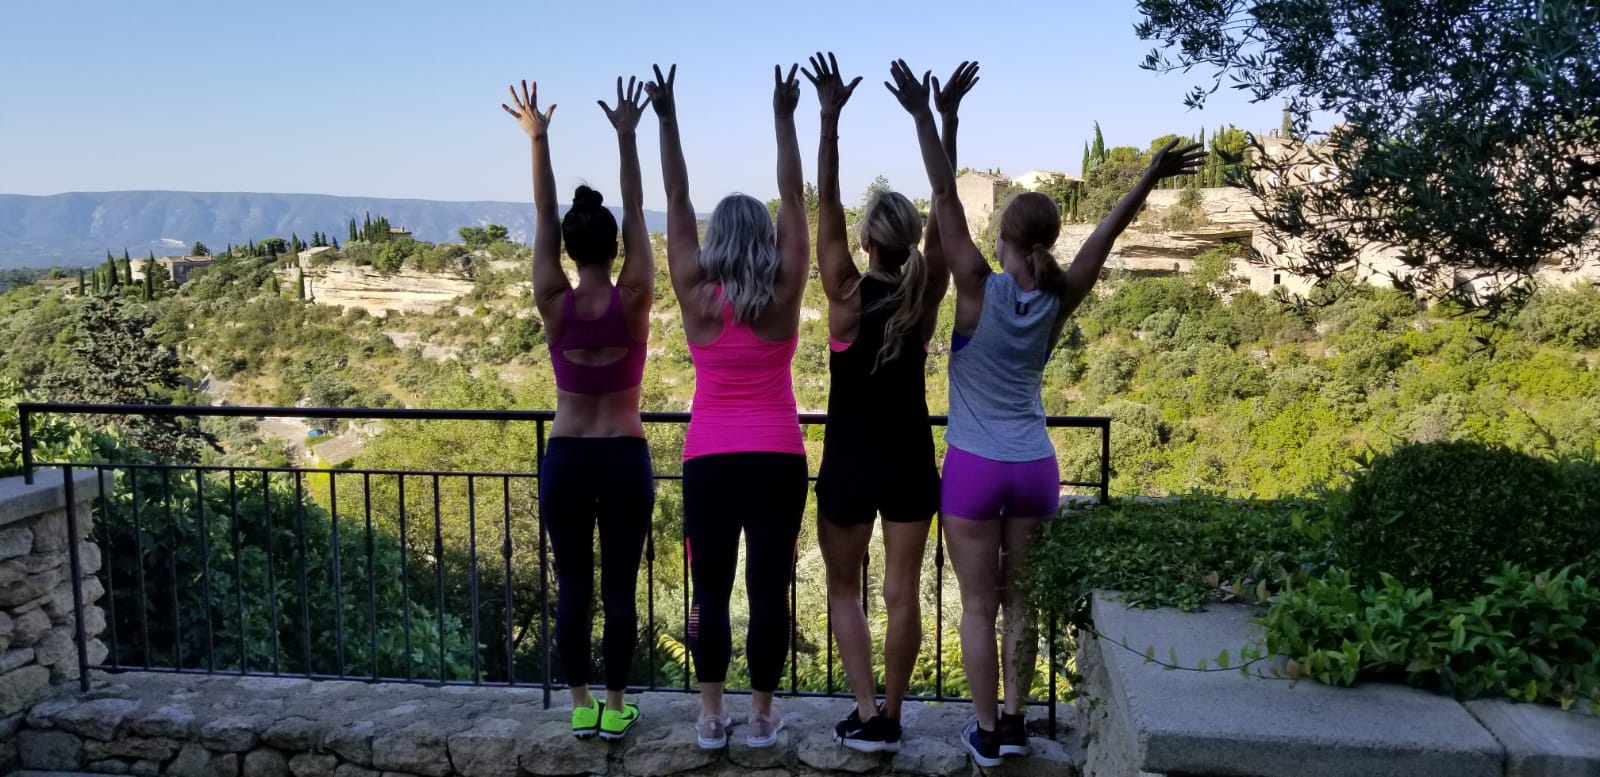 France, Provence, Influencer, Health and Fitness, Melanie Mitro Top Coach, Health and Fitness Influencer